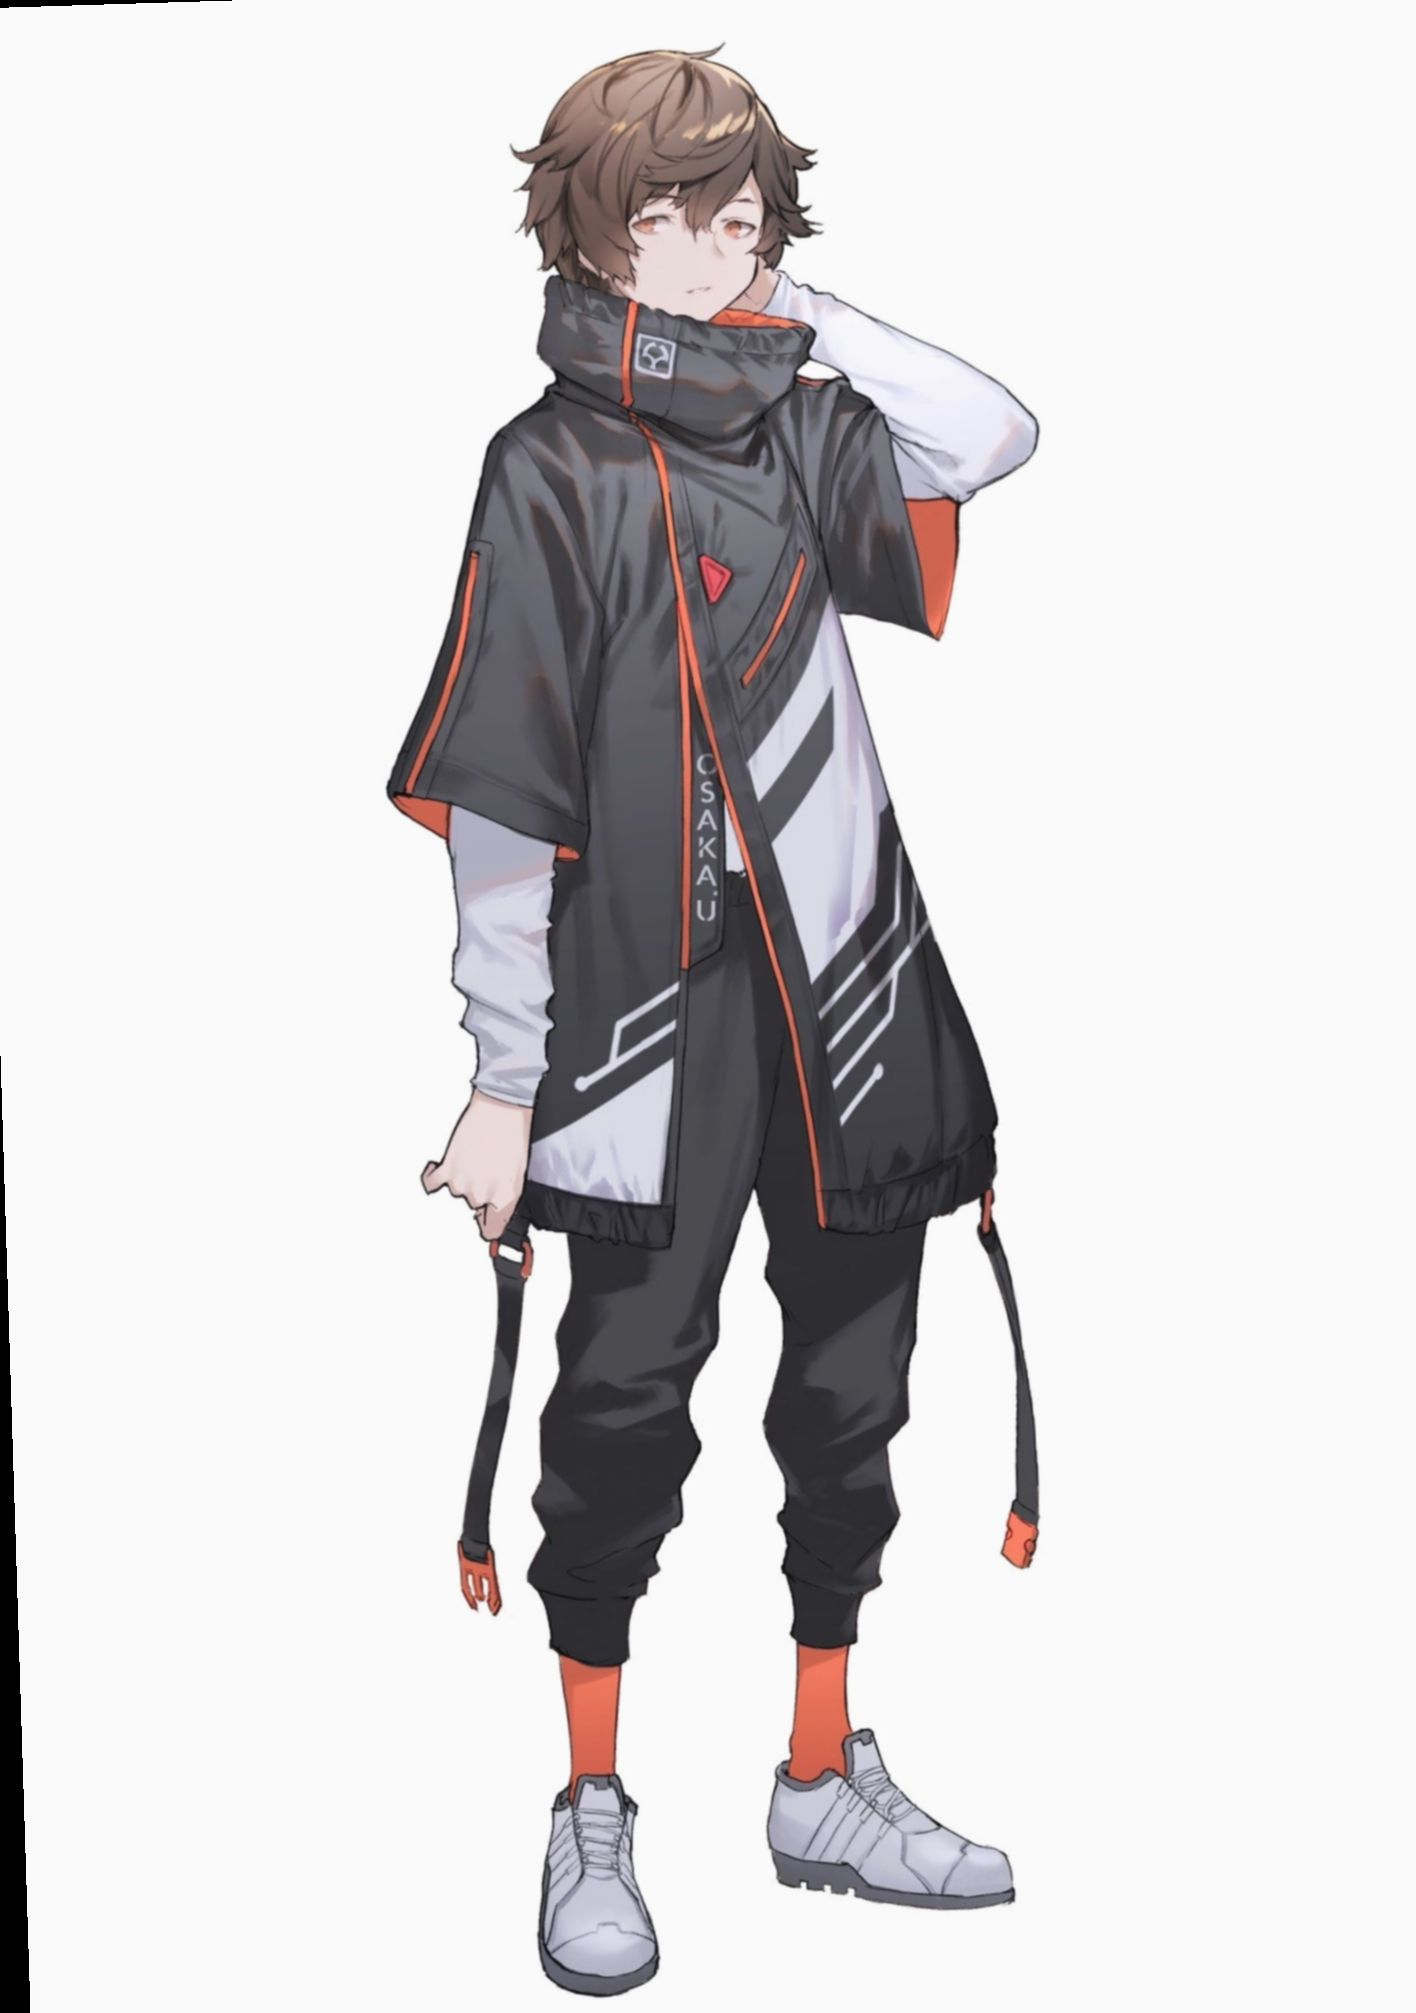 Cool Anime Outfits For Guys : anime, outfits, Anime, Outfits, Badass, Character, Design,, Design, Inspiration,, Cyberpunk